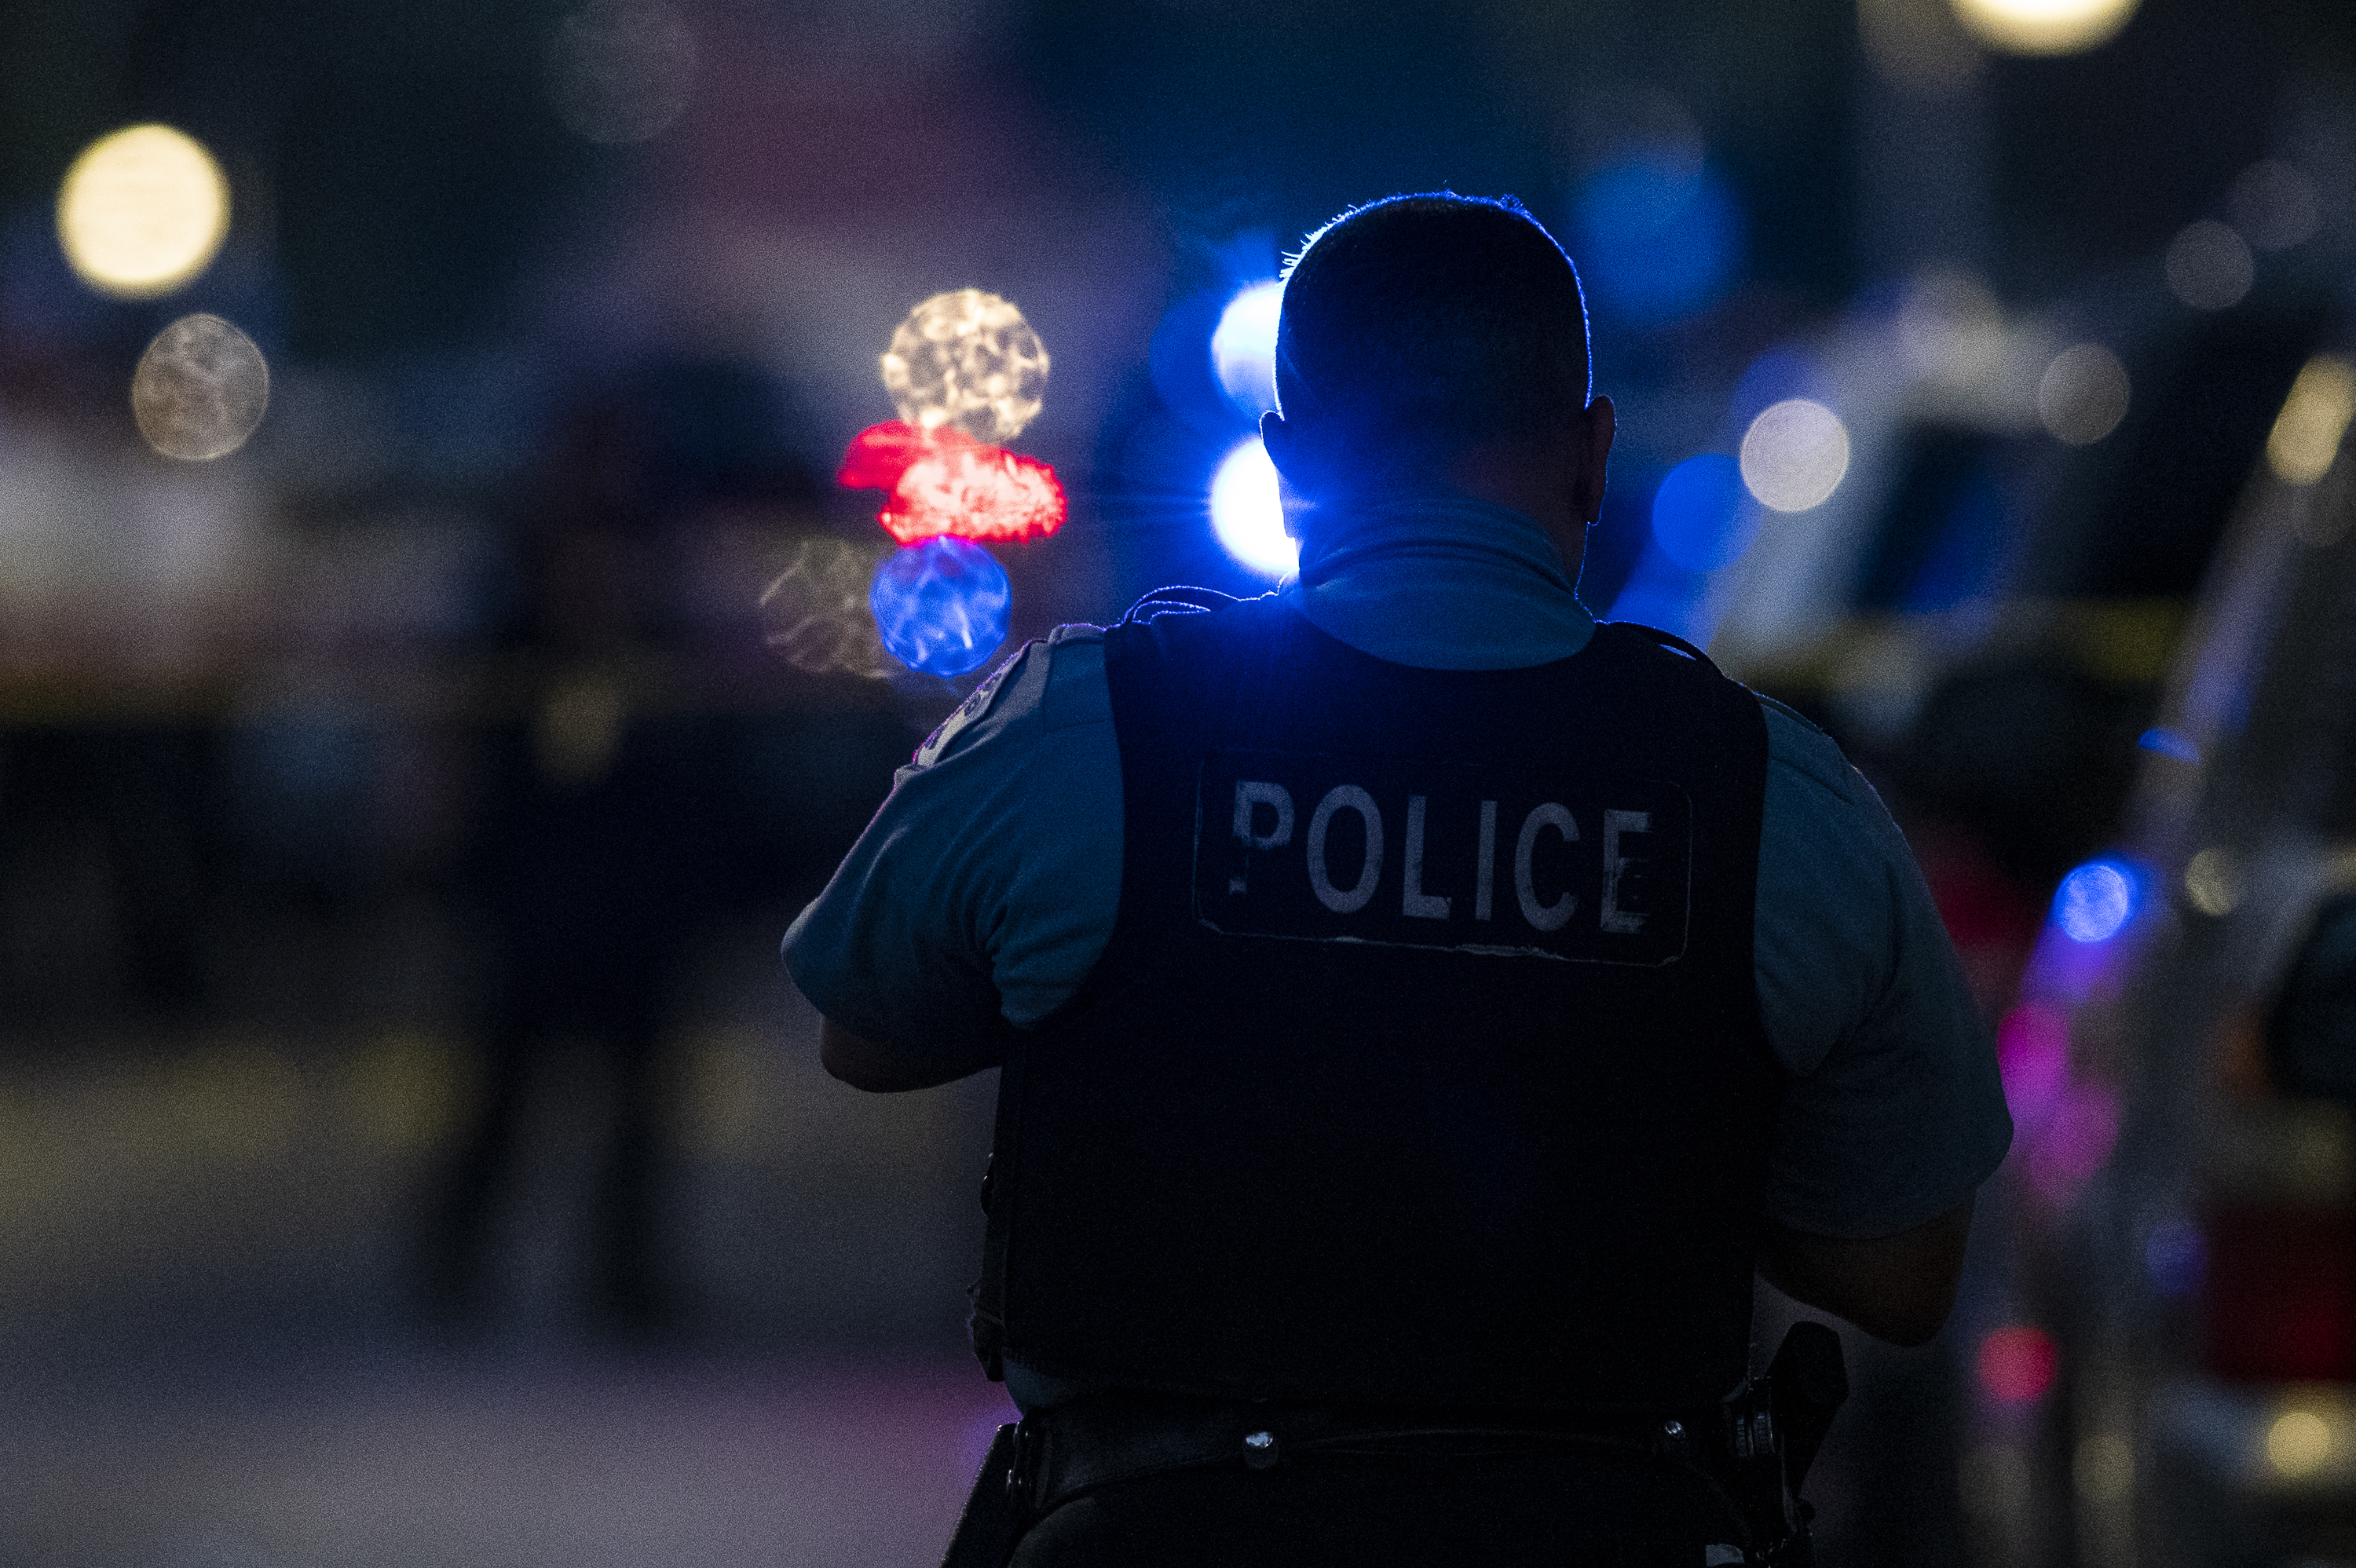 Six people were shot, two fatally, Jan. 21, 2021 in Chicago.